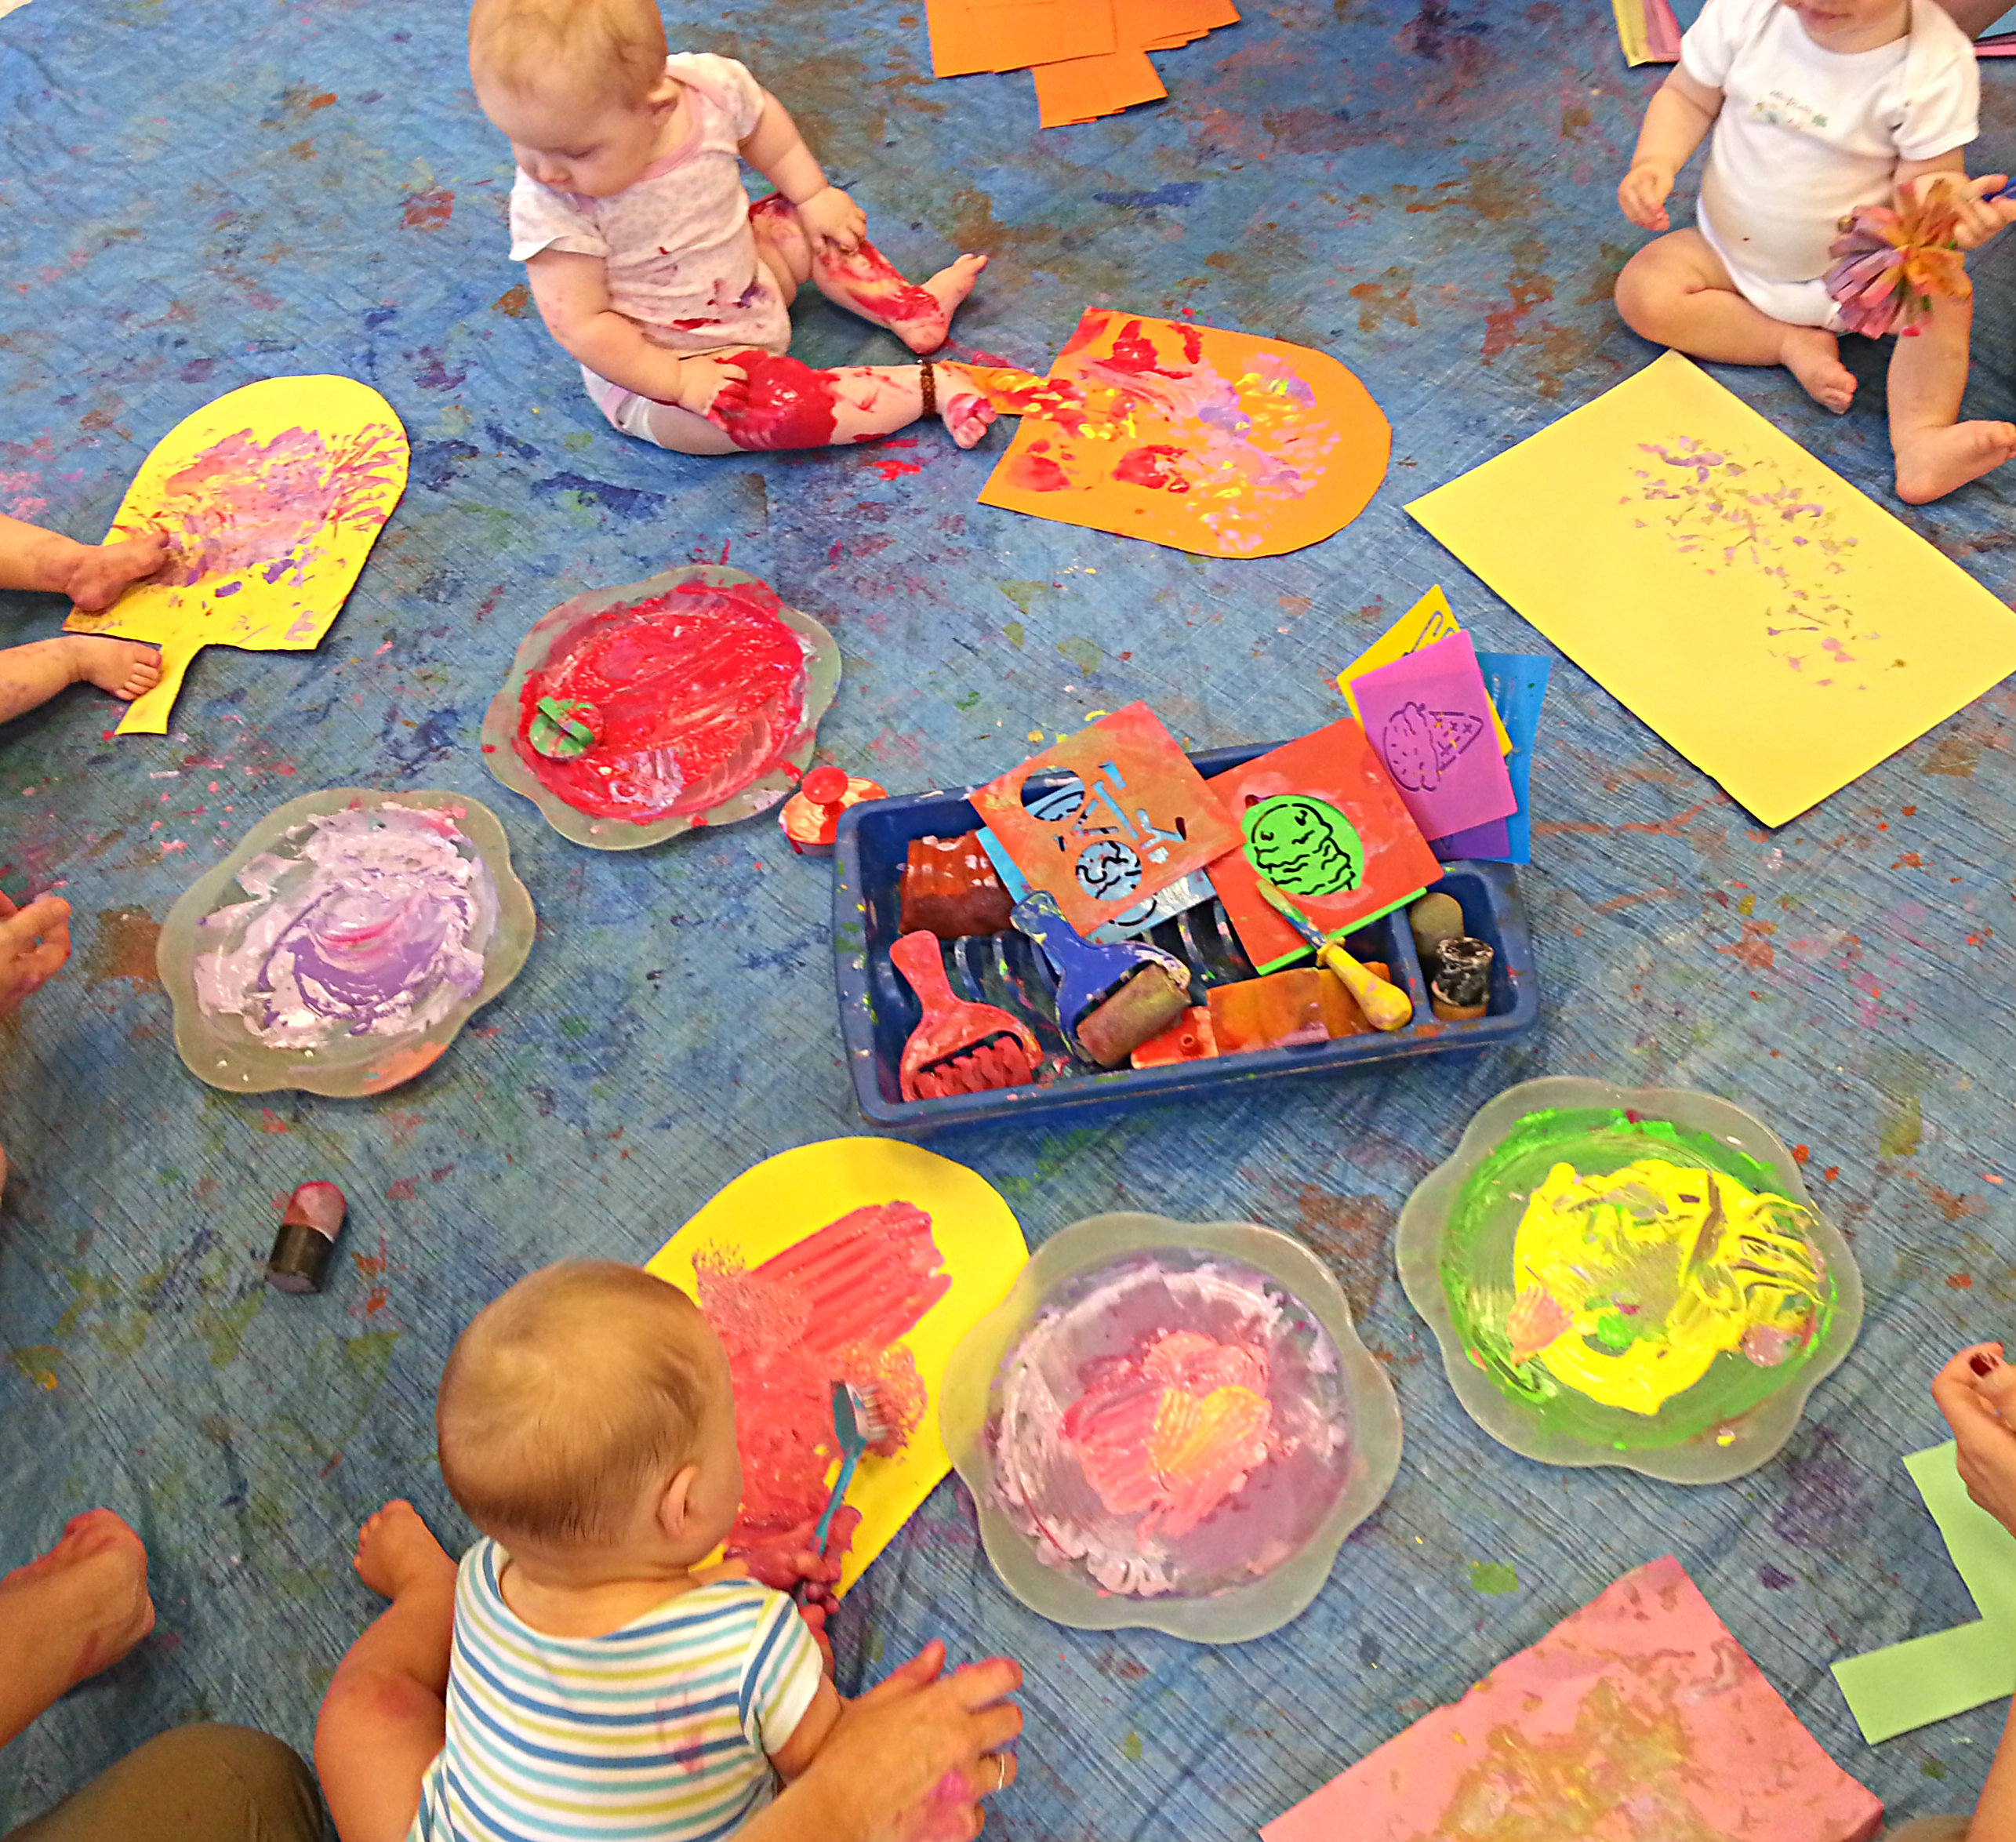 10 reasons why art and creative play activities are so